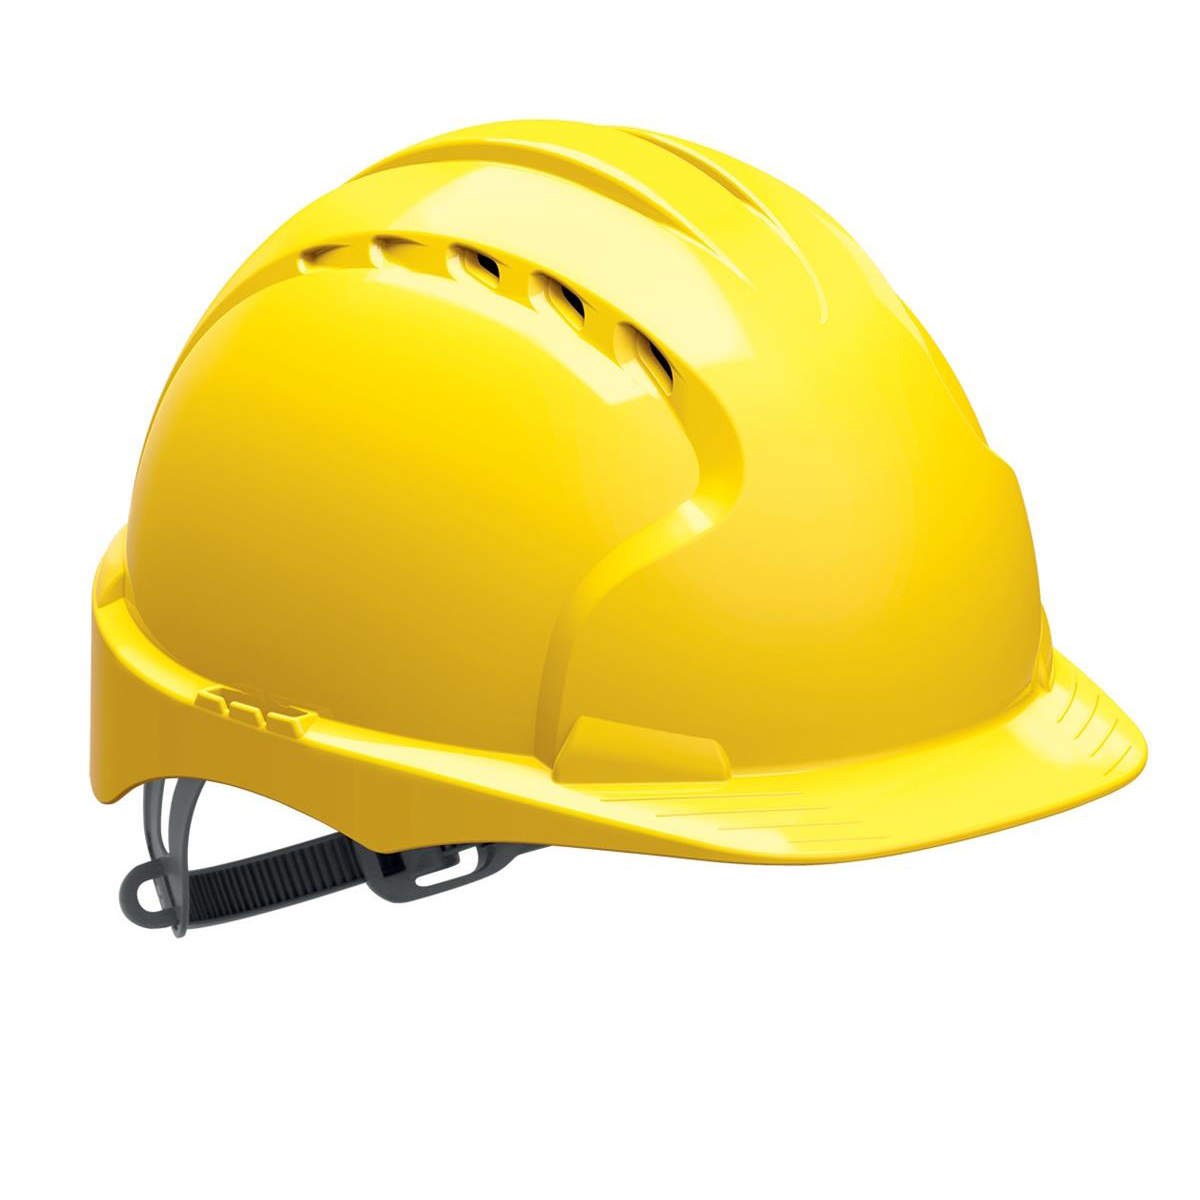 Safety helmets JSP EVO2 Safety Helmet HDPE 6-point Polyethylene Harness EN397 Standard Yellow Ref AJF030-000-200